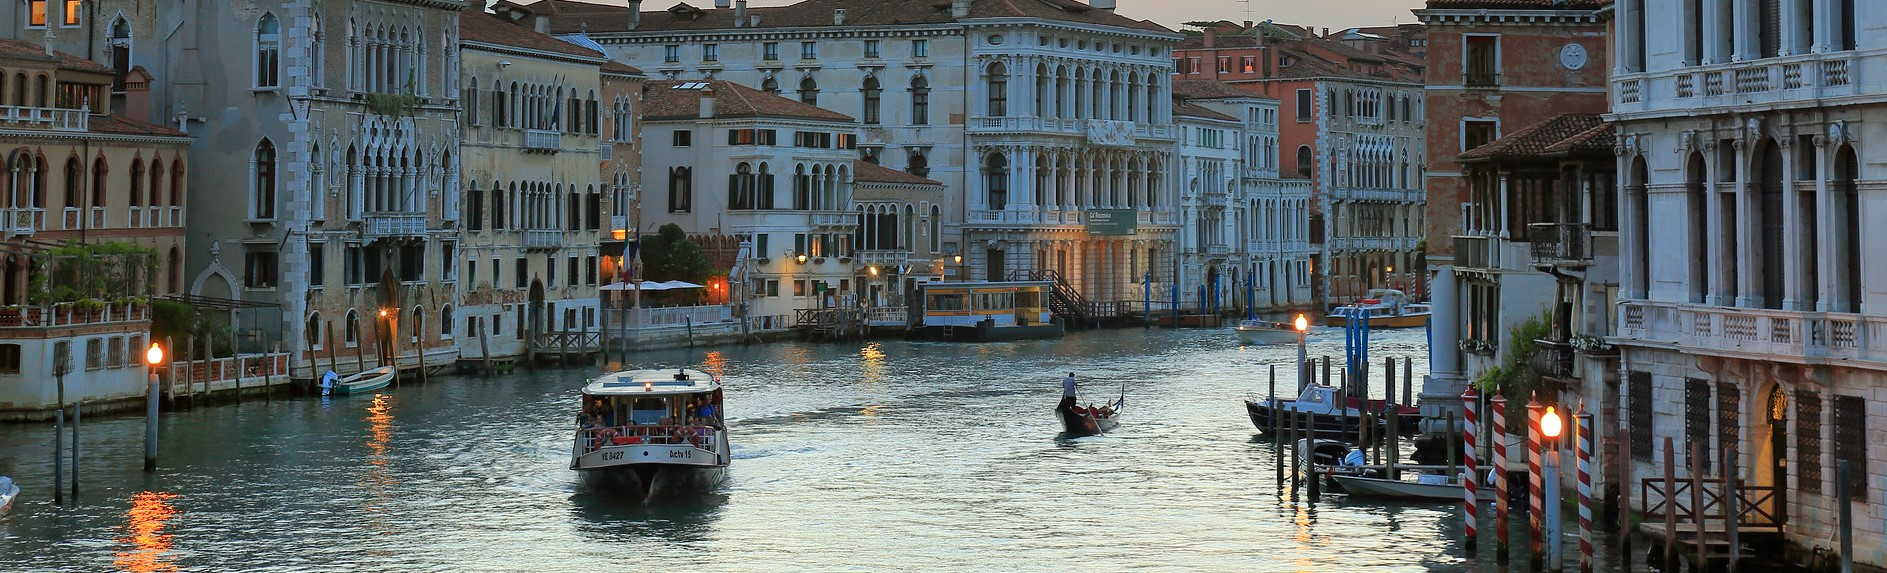 What attractions are worth the visit to Venice?